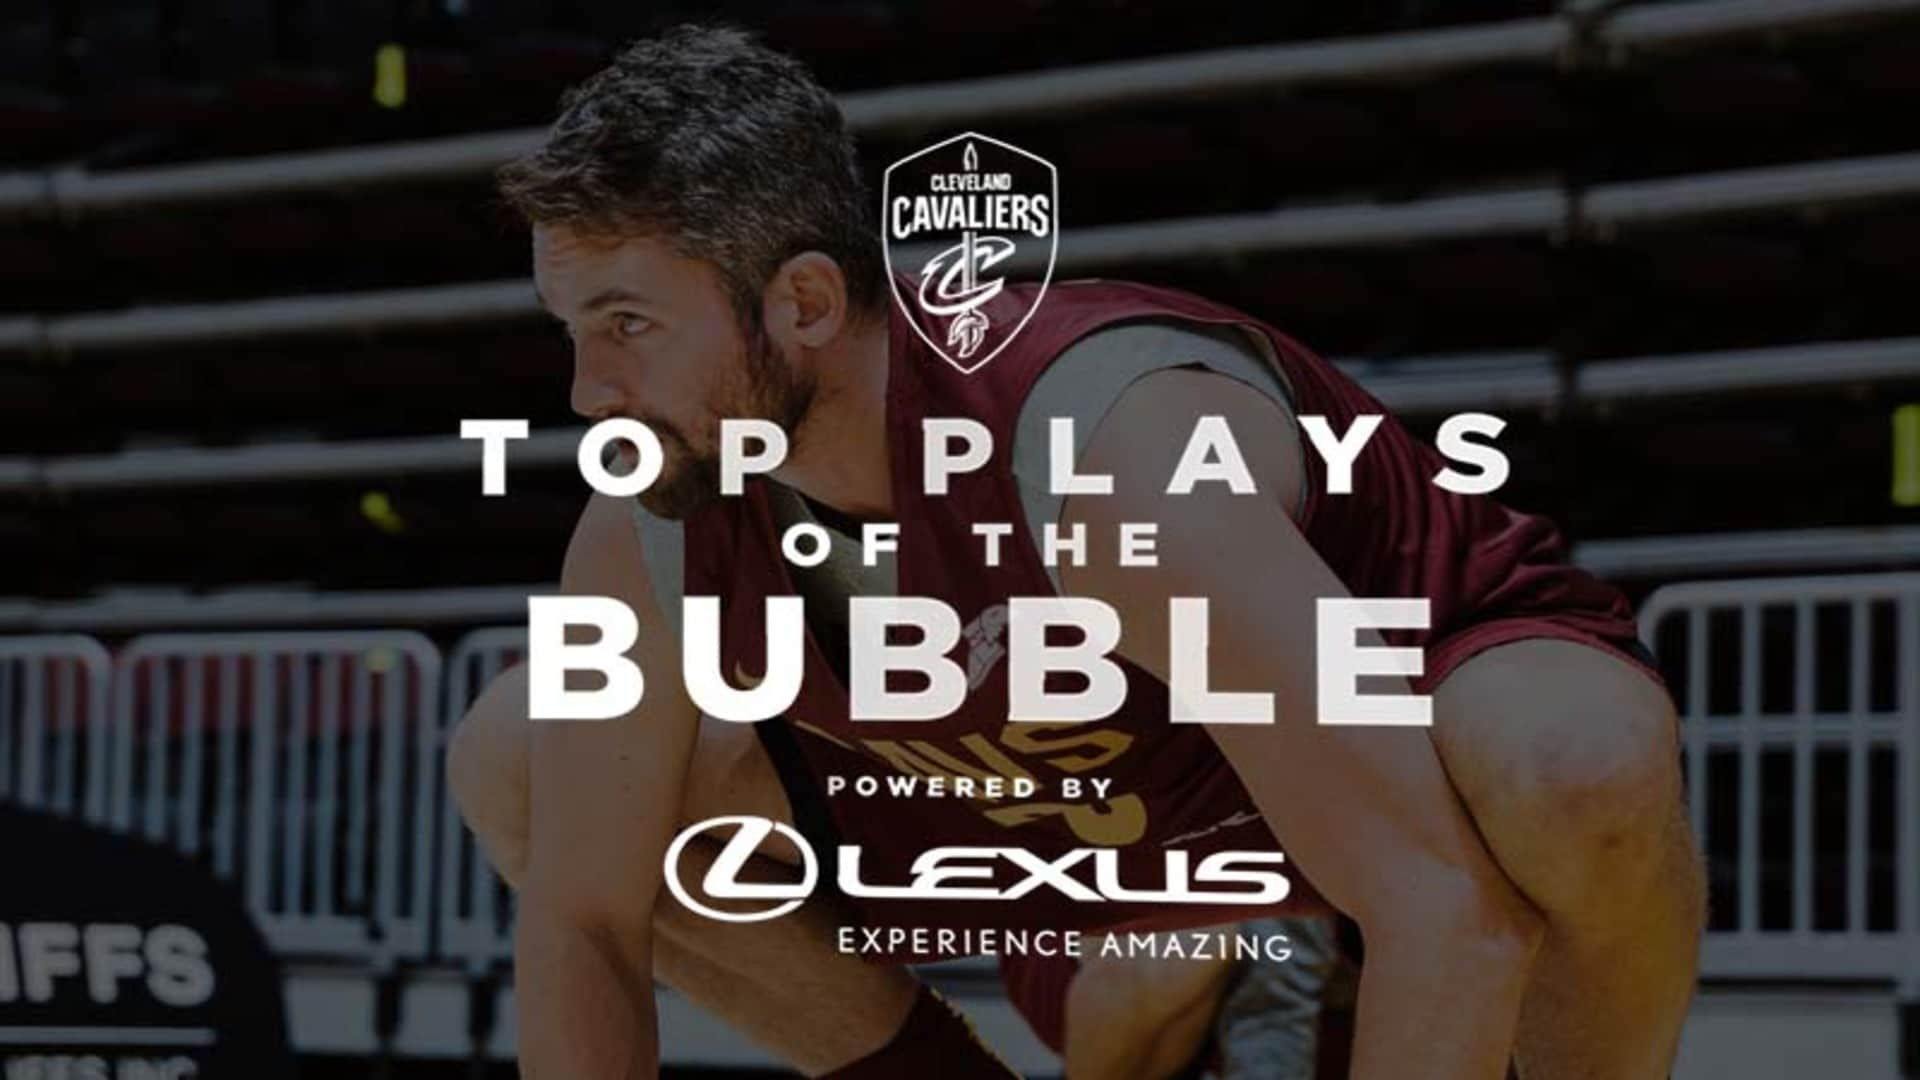 Top Plays of the Bubble Powered by Lexus: Kevin Love